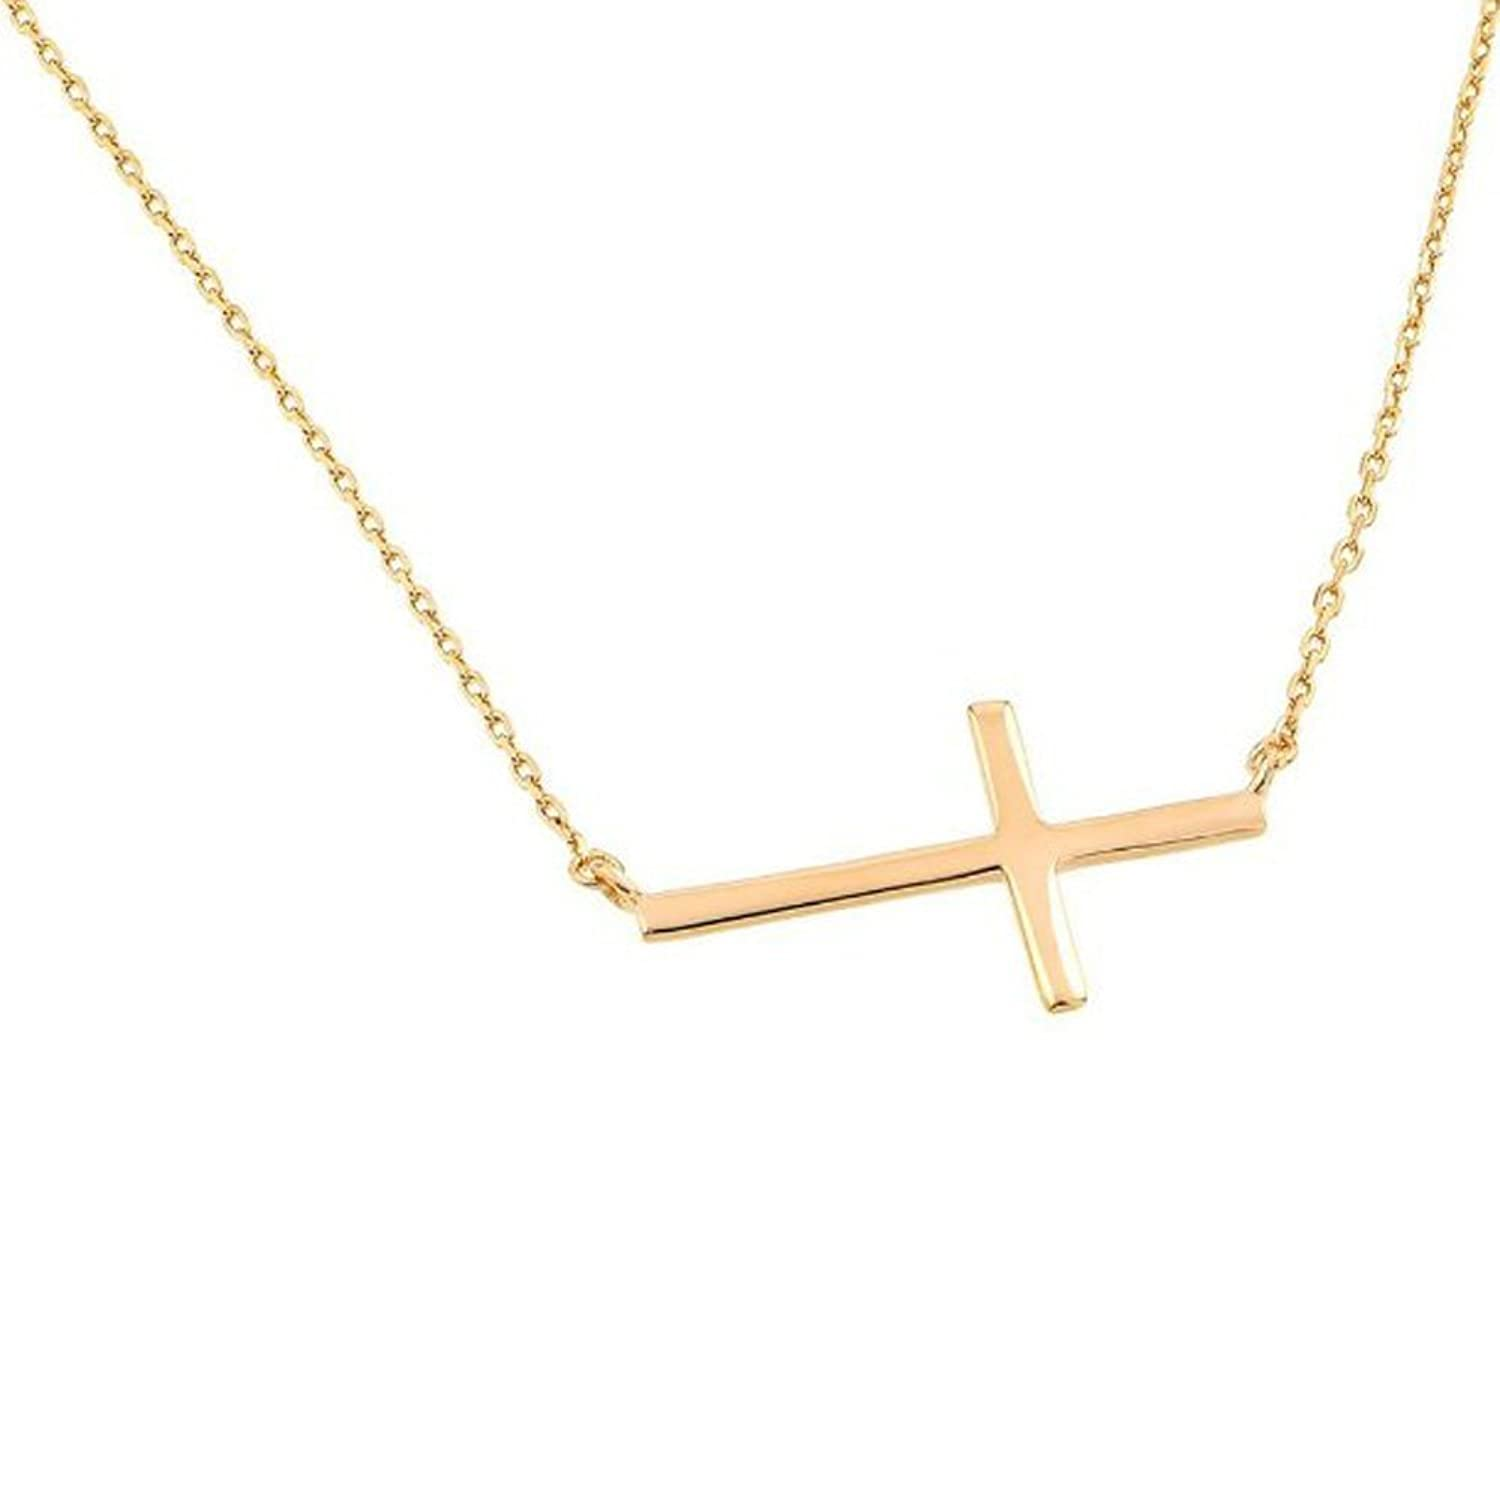 "High Polished 14K Solid Yellow Gold Sideways Cross Necklace with Rolo Link Chain - 18"" inches"